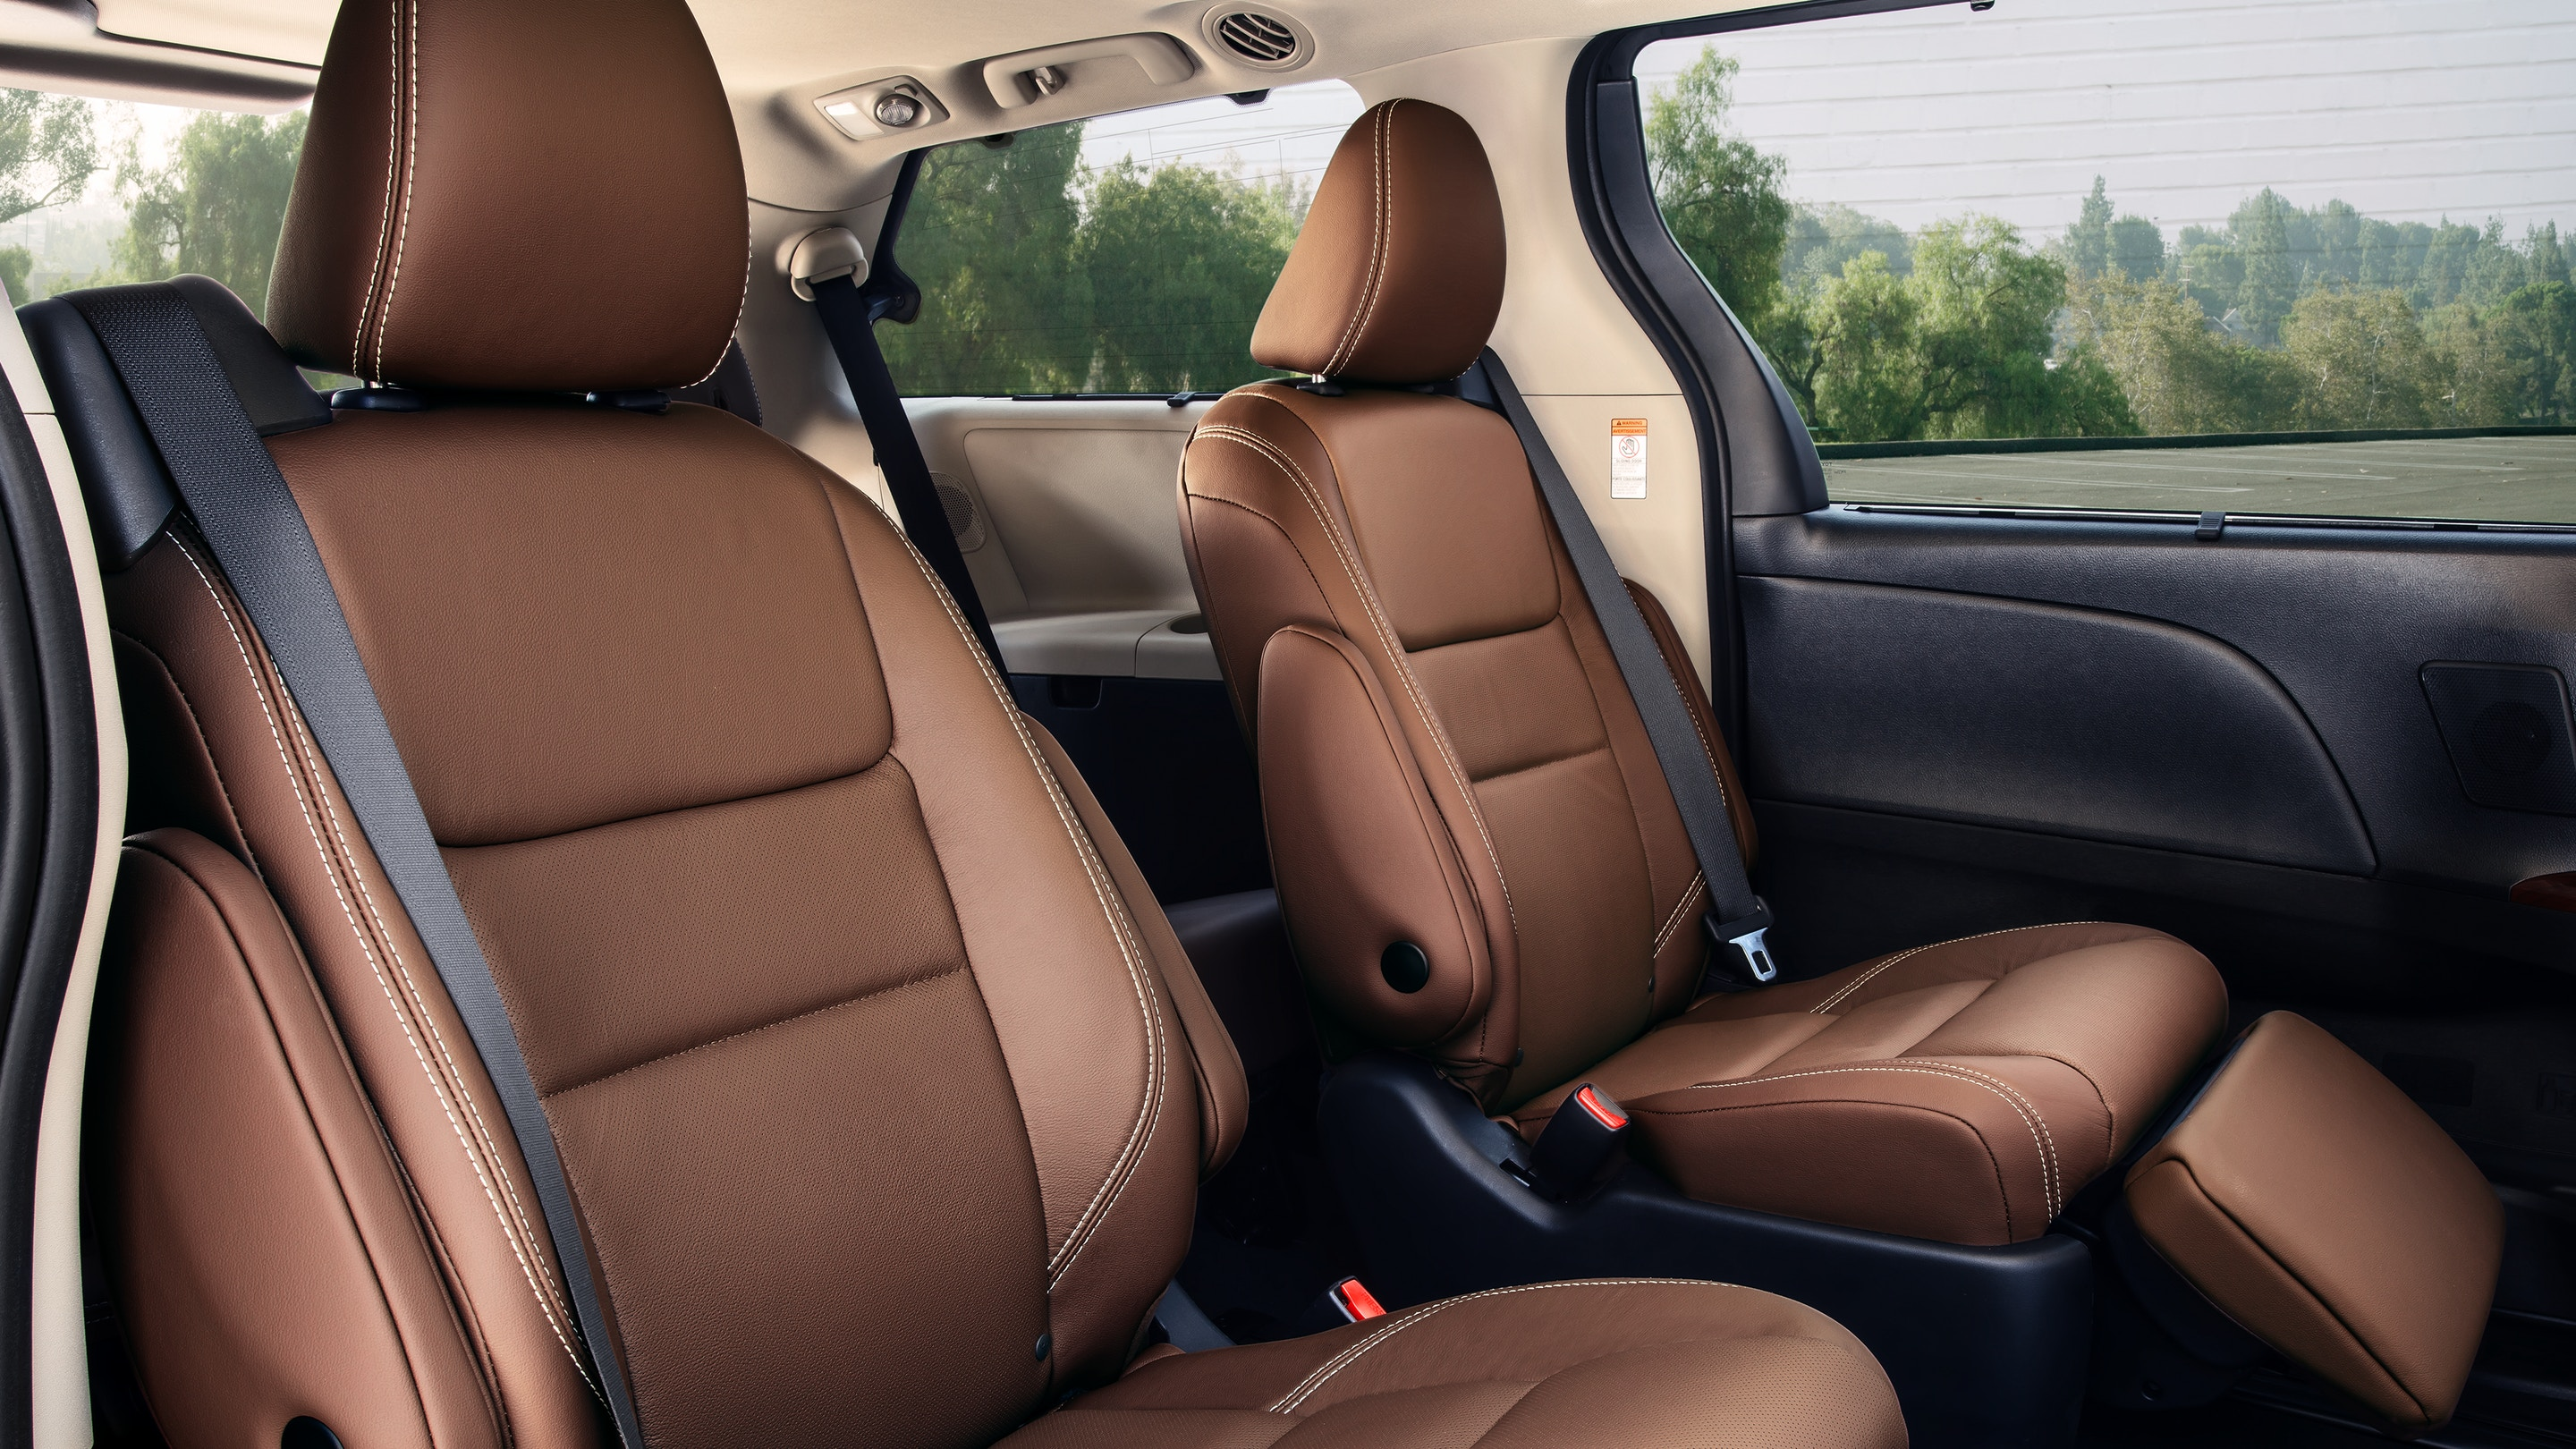 Comfortable Seats in the 2020 Sienna